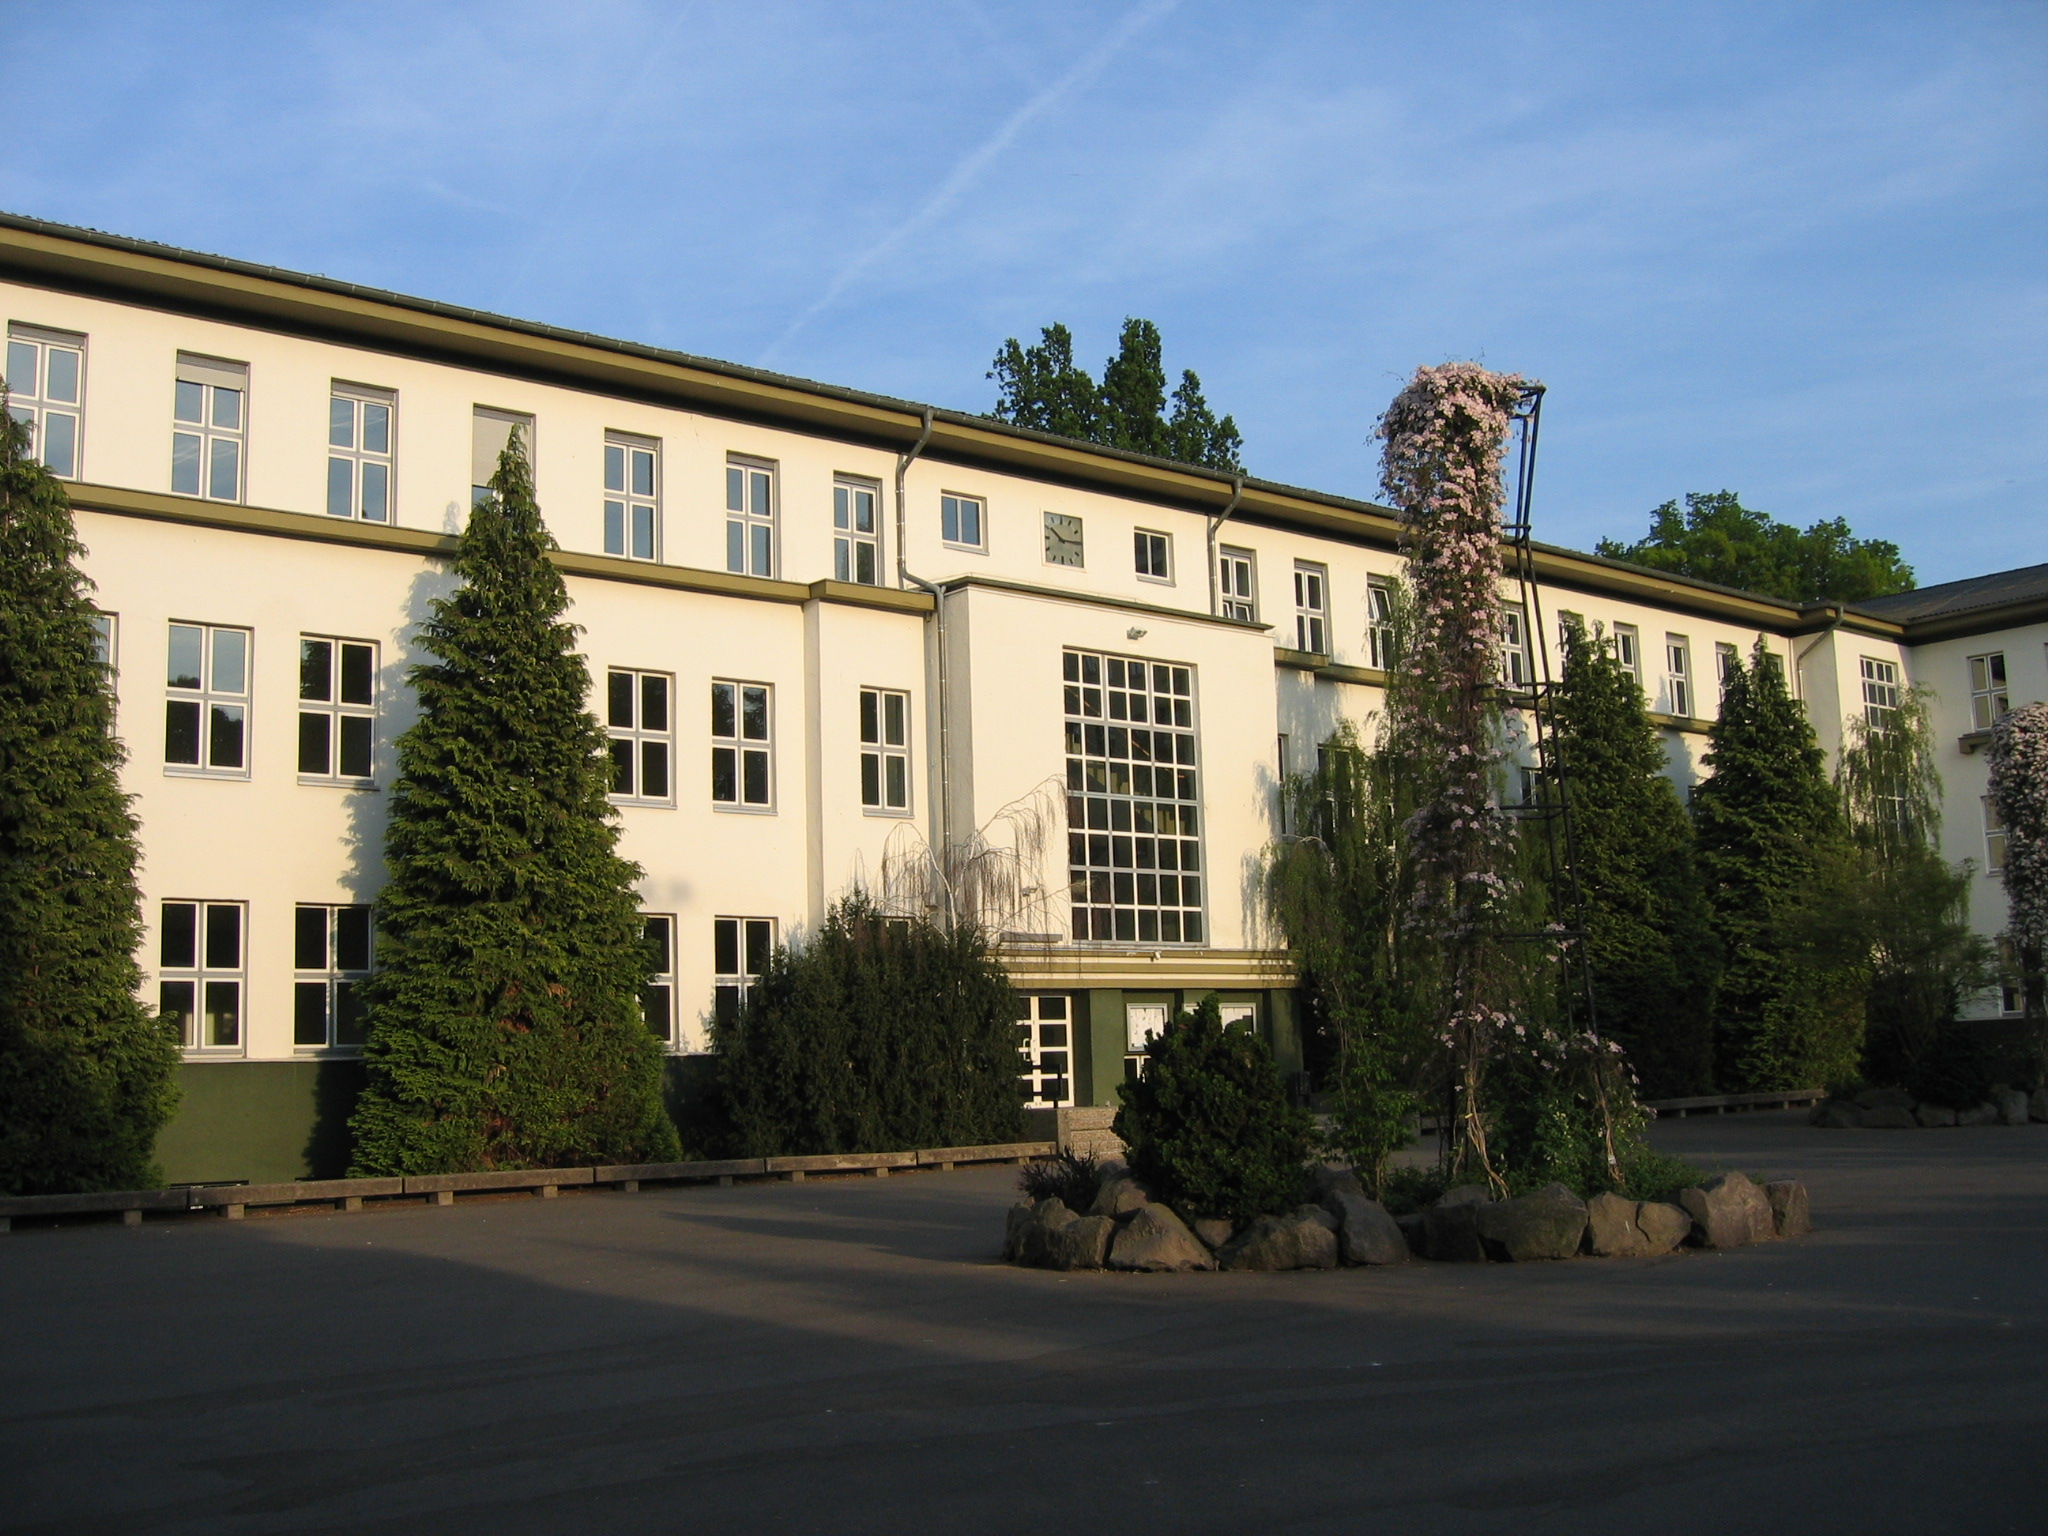 german gymnasium and american community college